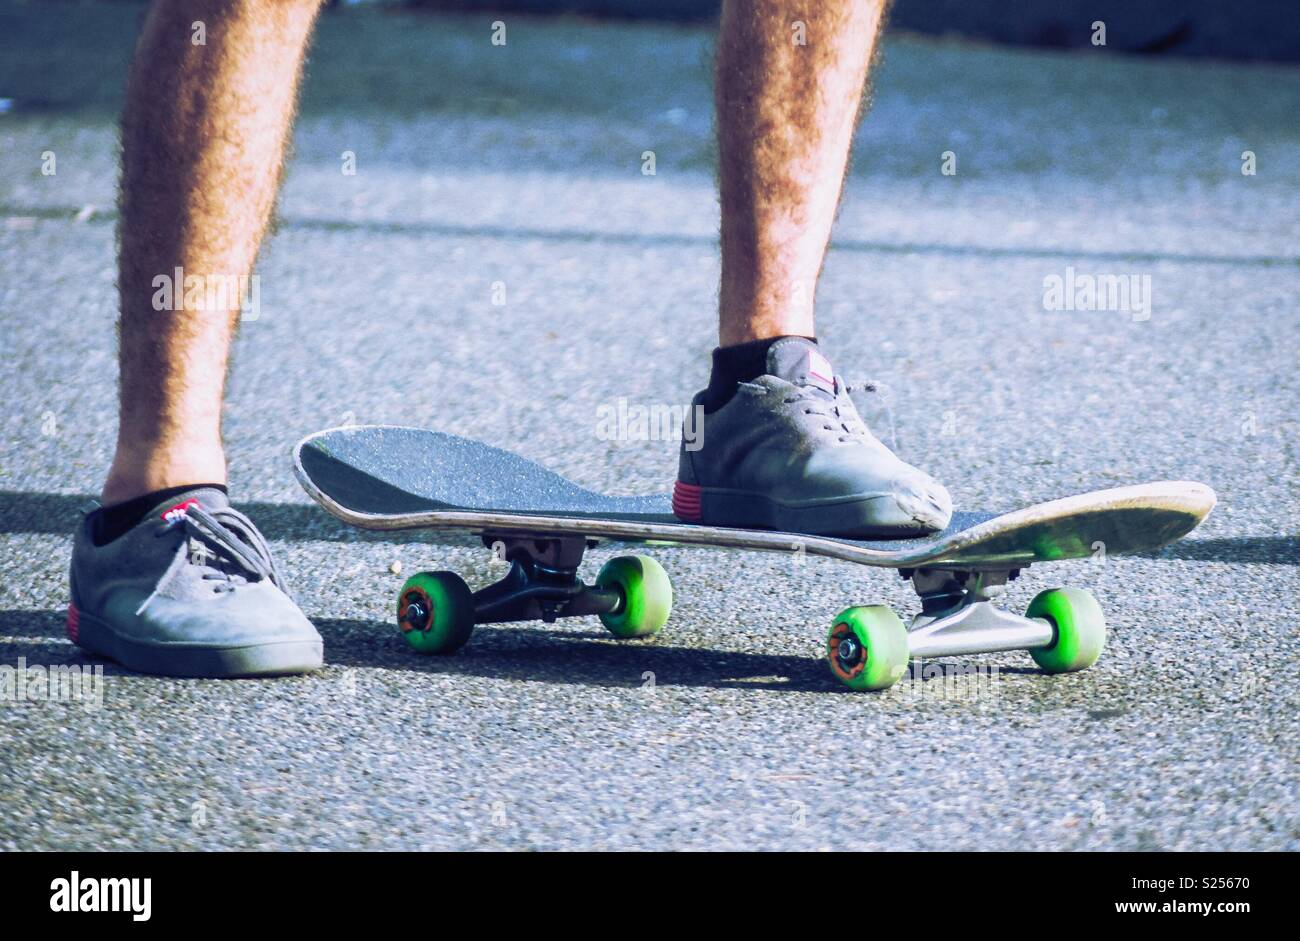 Young man on skateboard - Stock Image